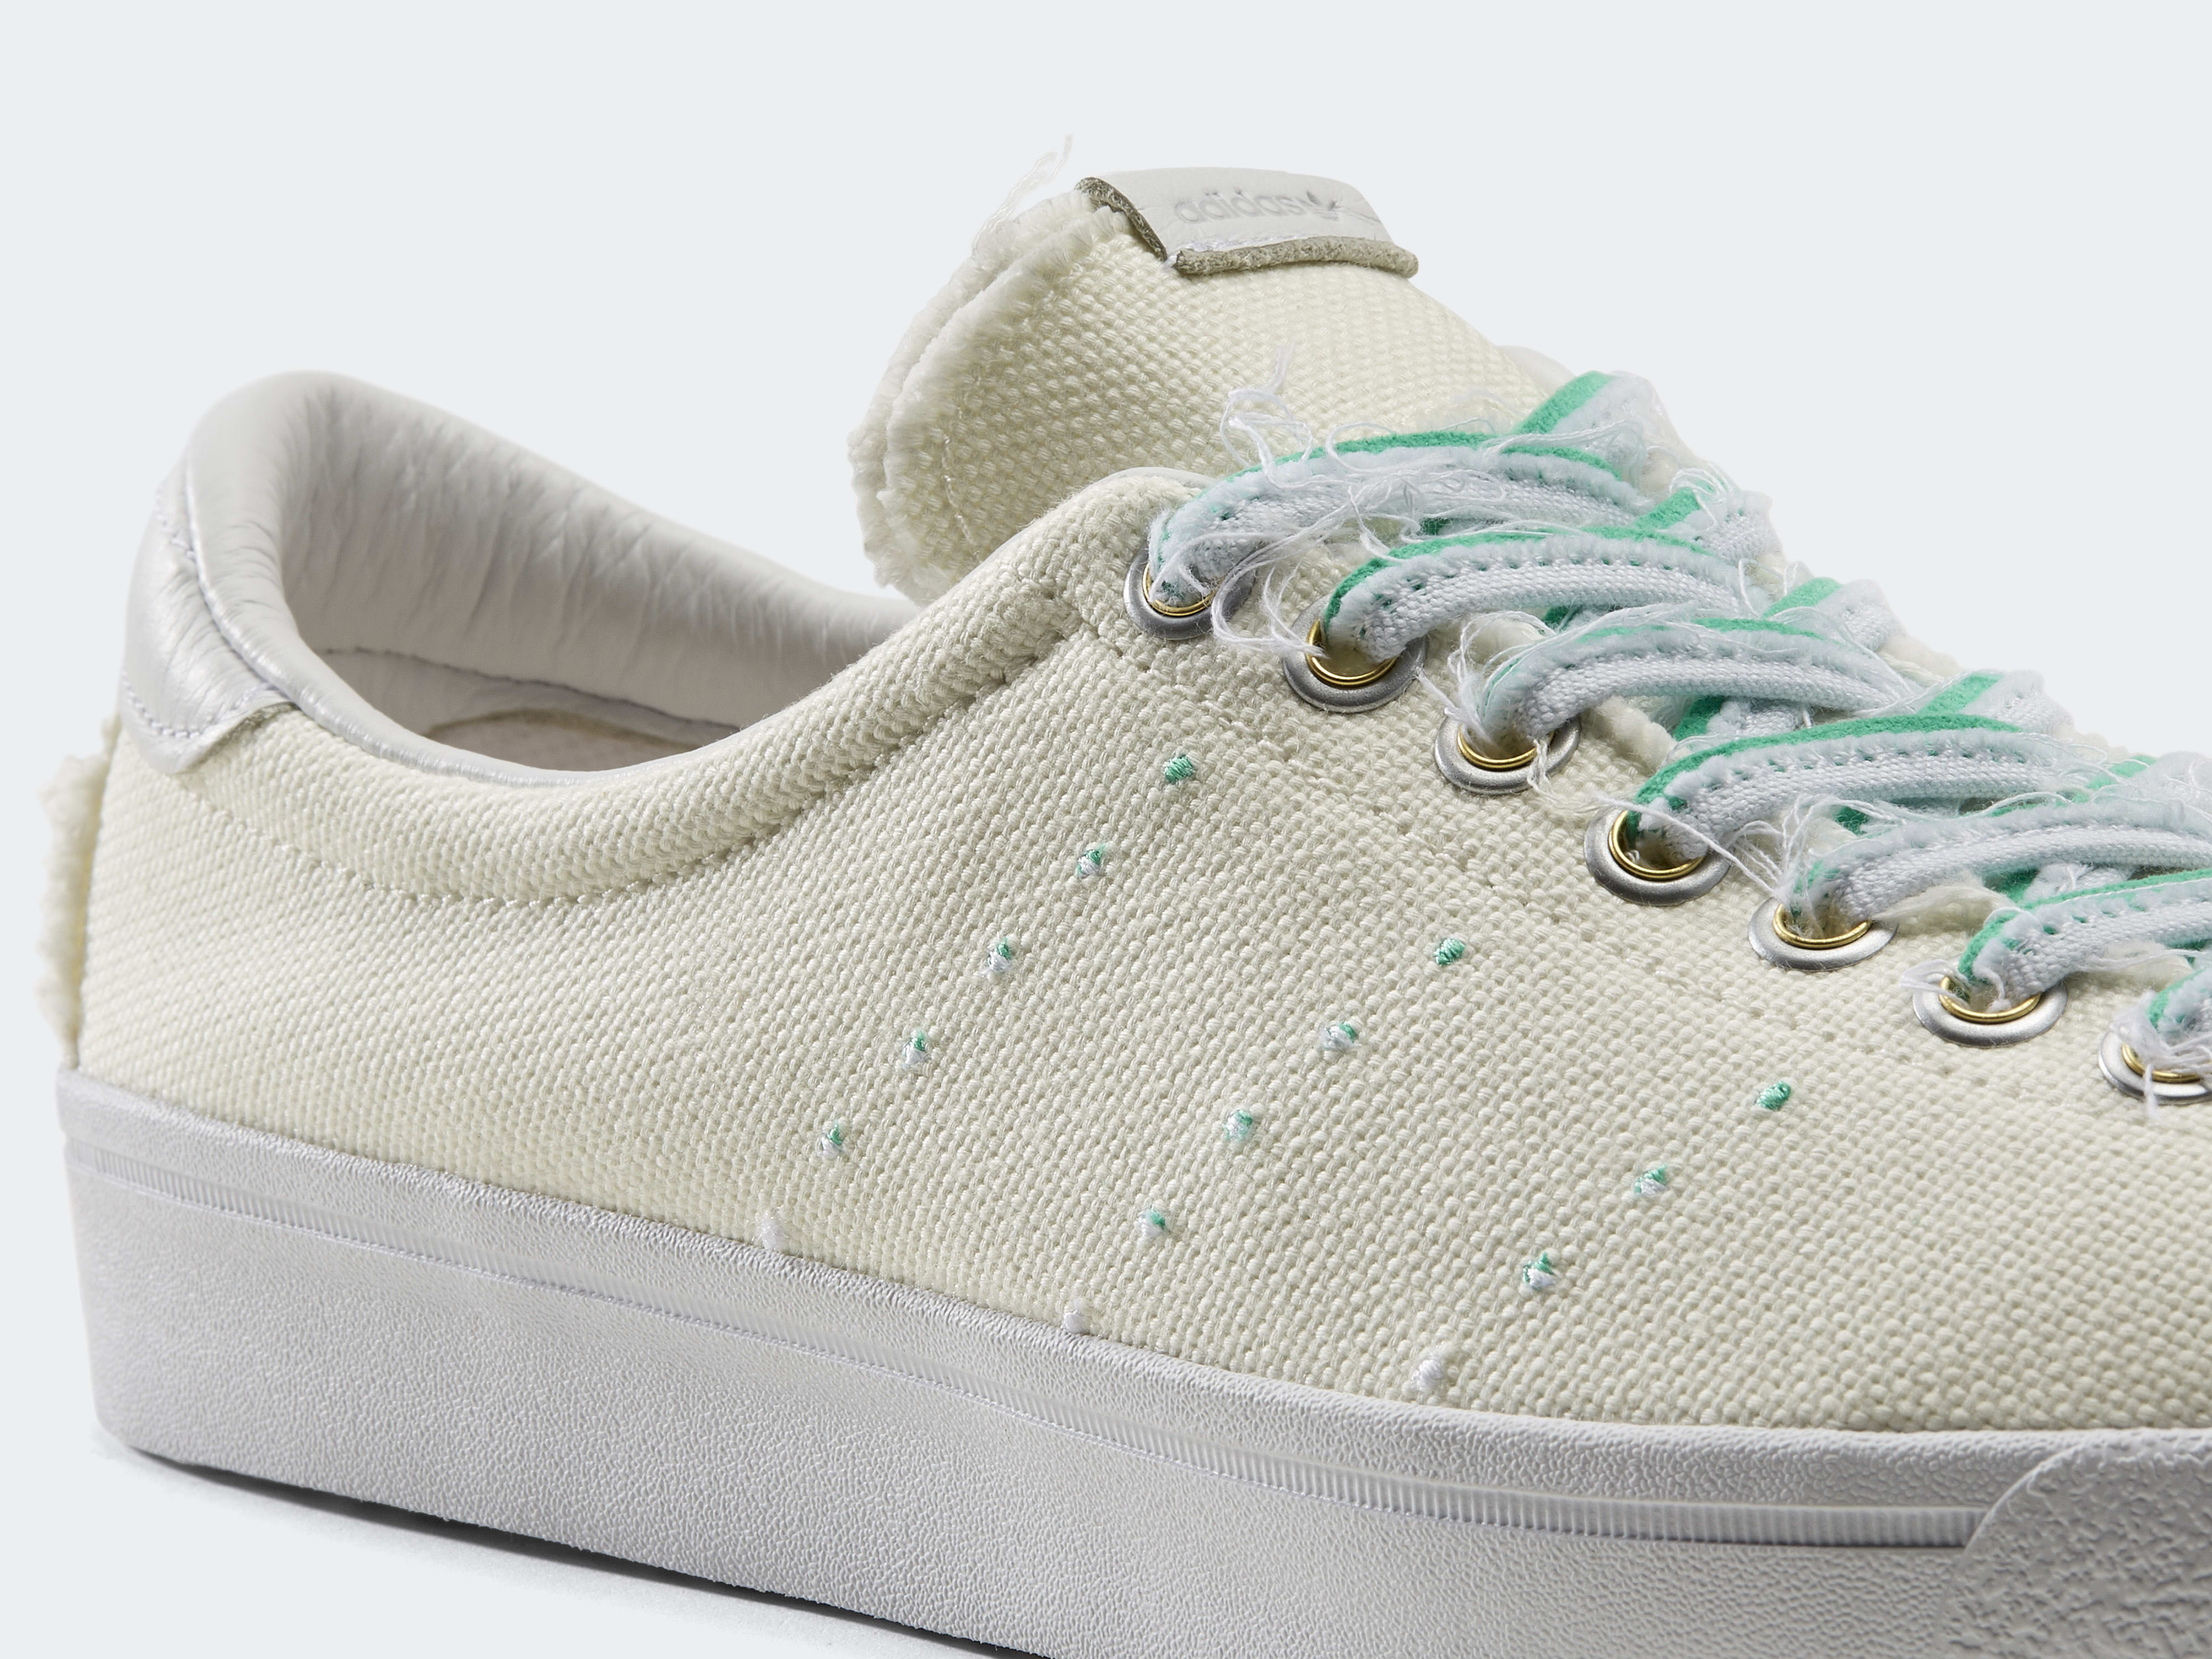 Donald Glover x Adidas Lacombe EF2667 (Detail)